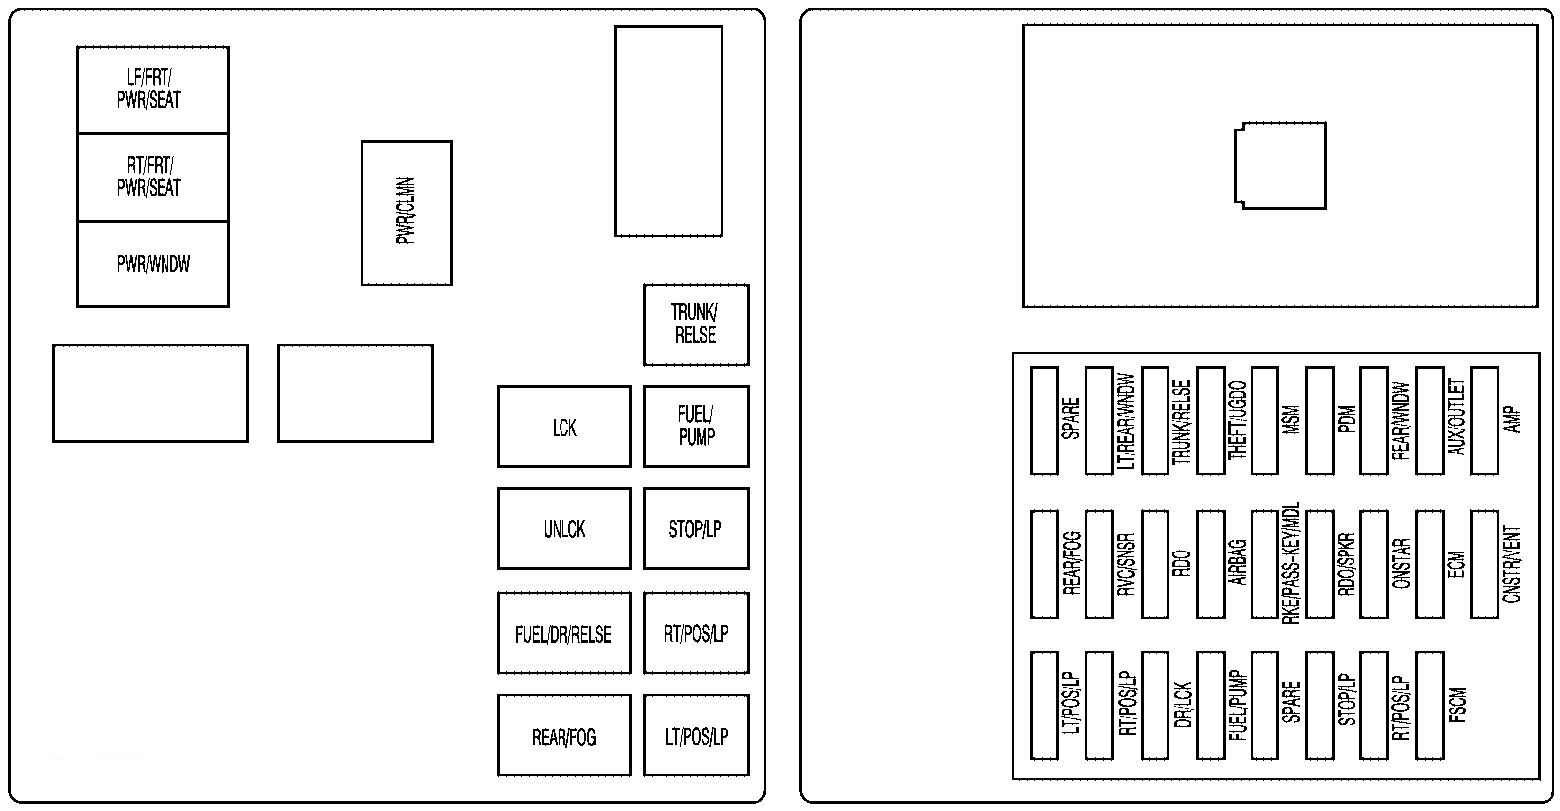 2010 Cadillac Cts Fuse Box Diagram : 34 Wiring Diagram